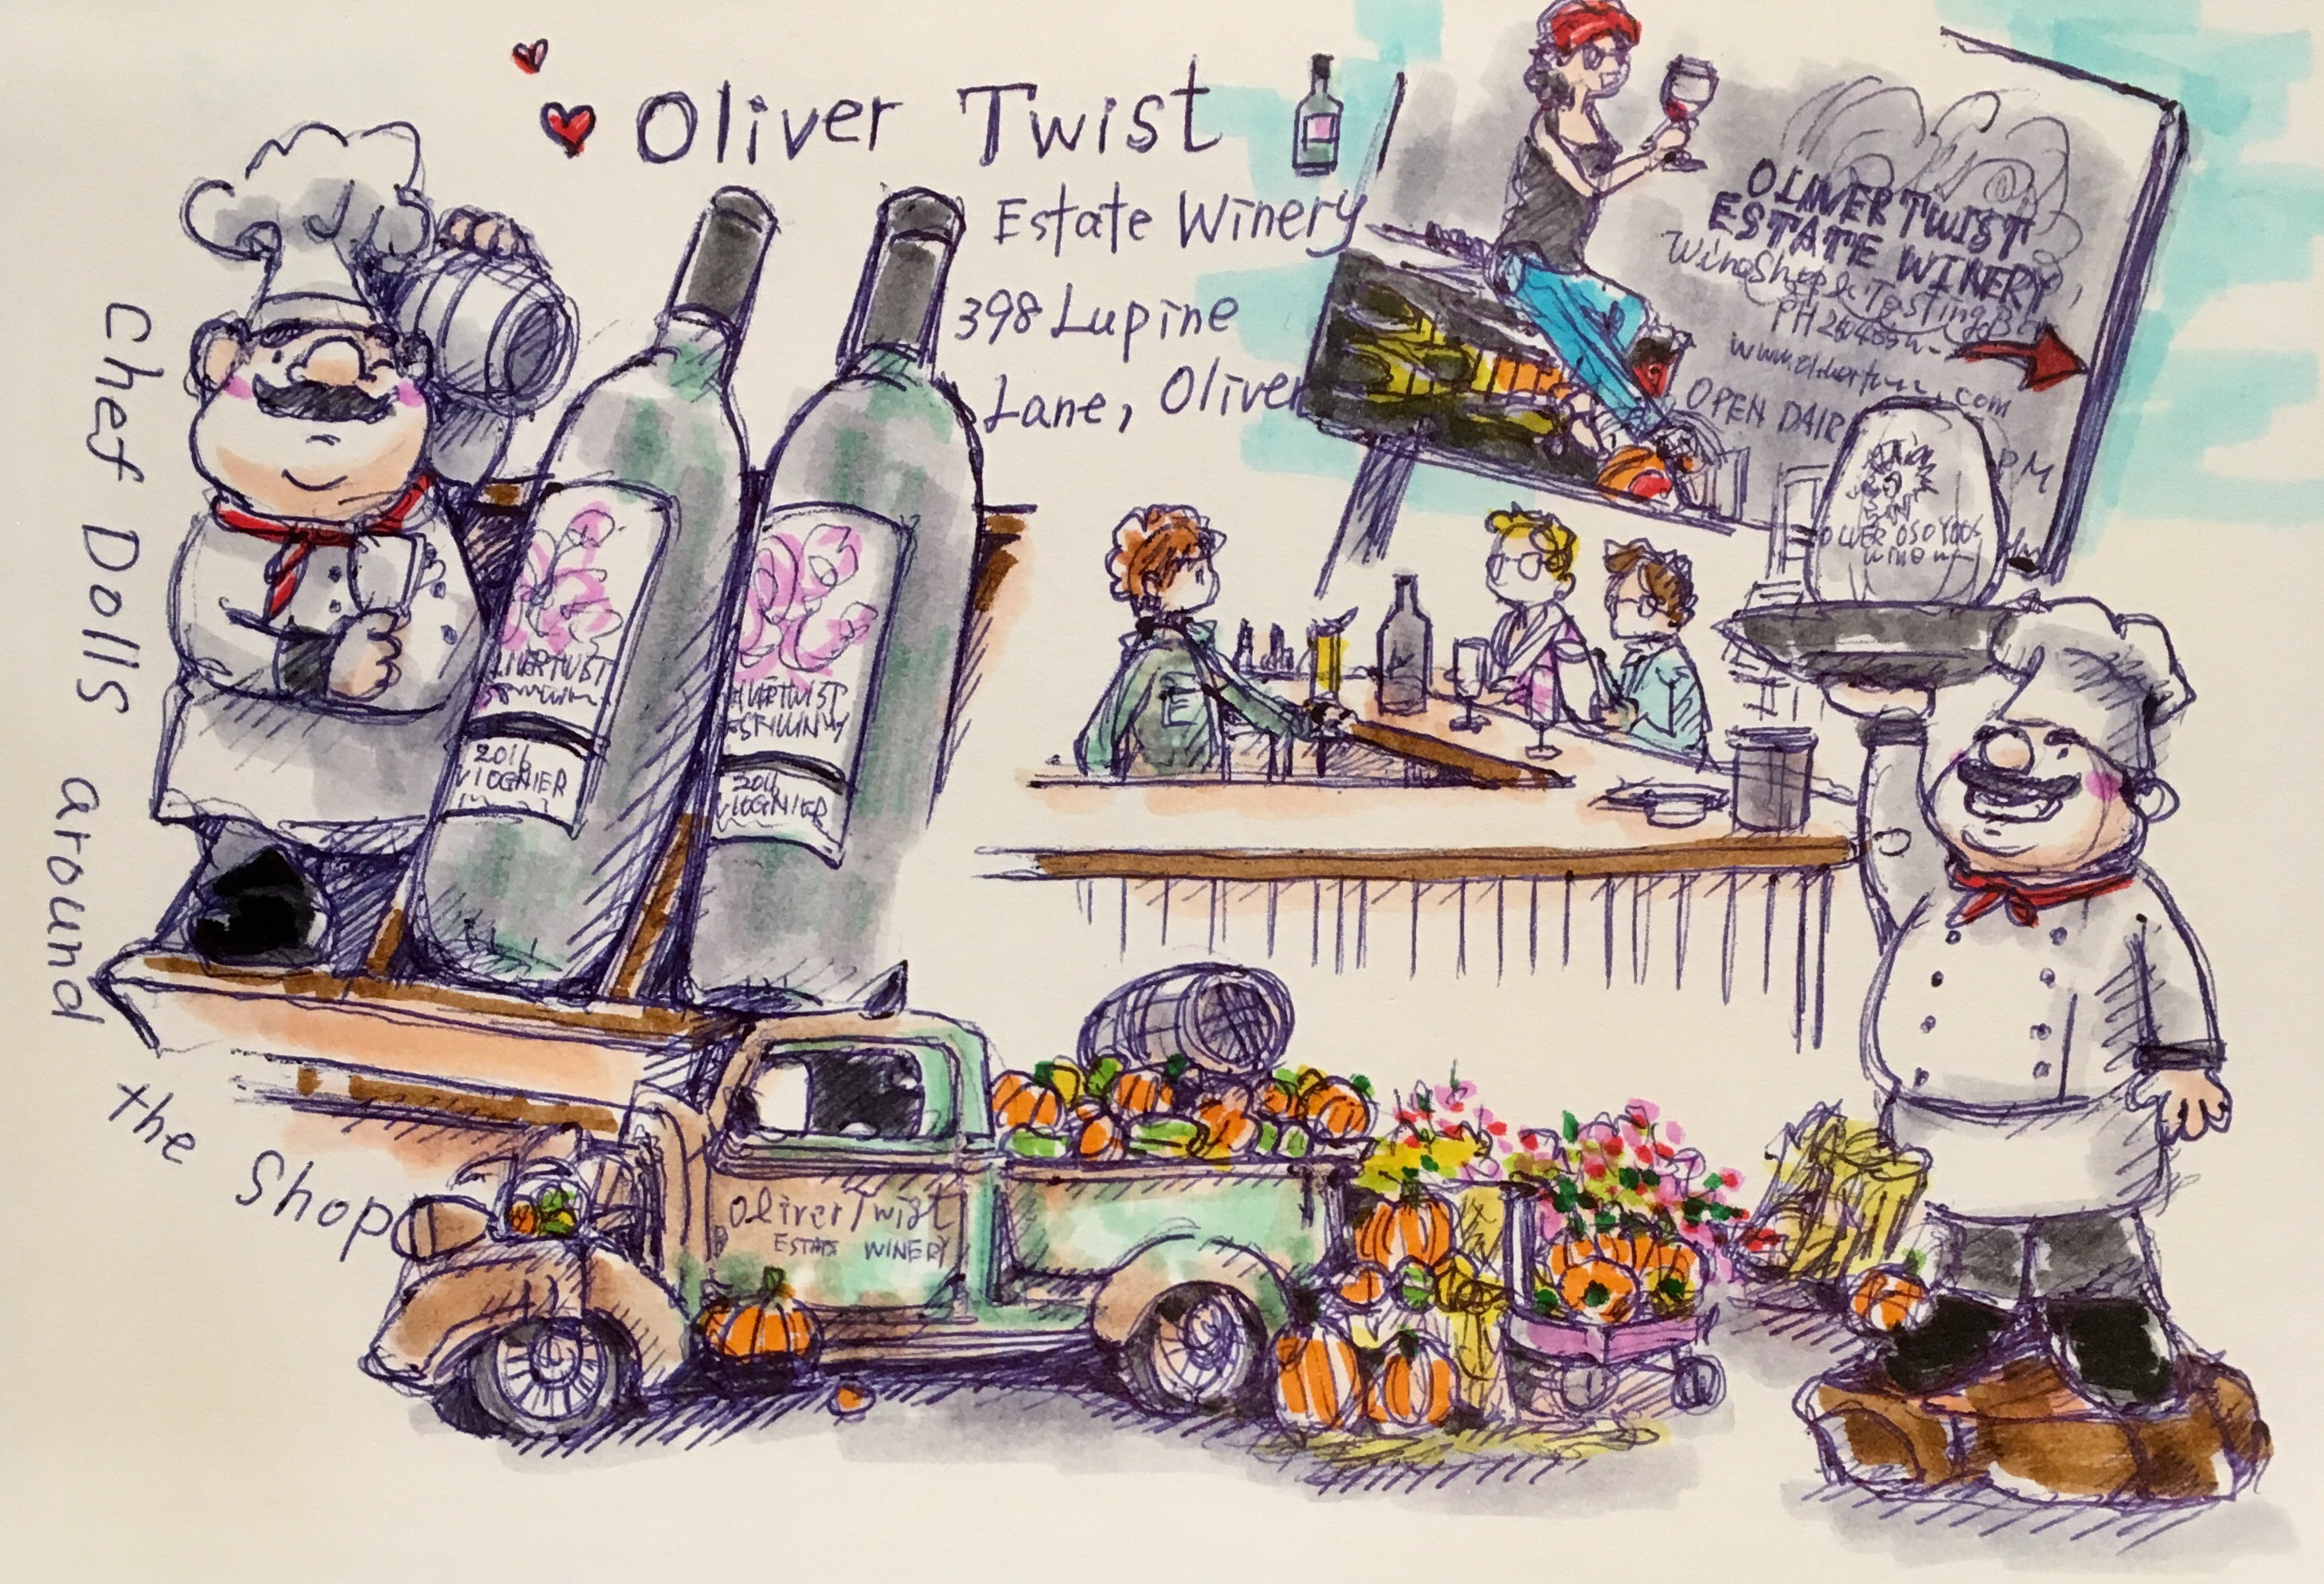 Oliver Twist Winery